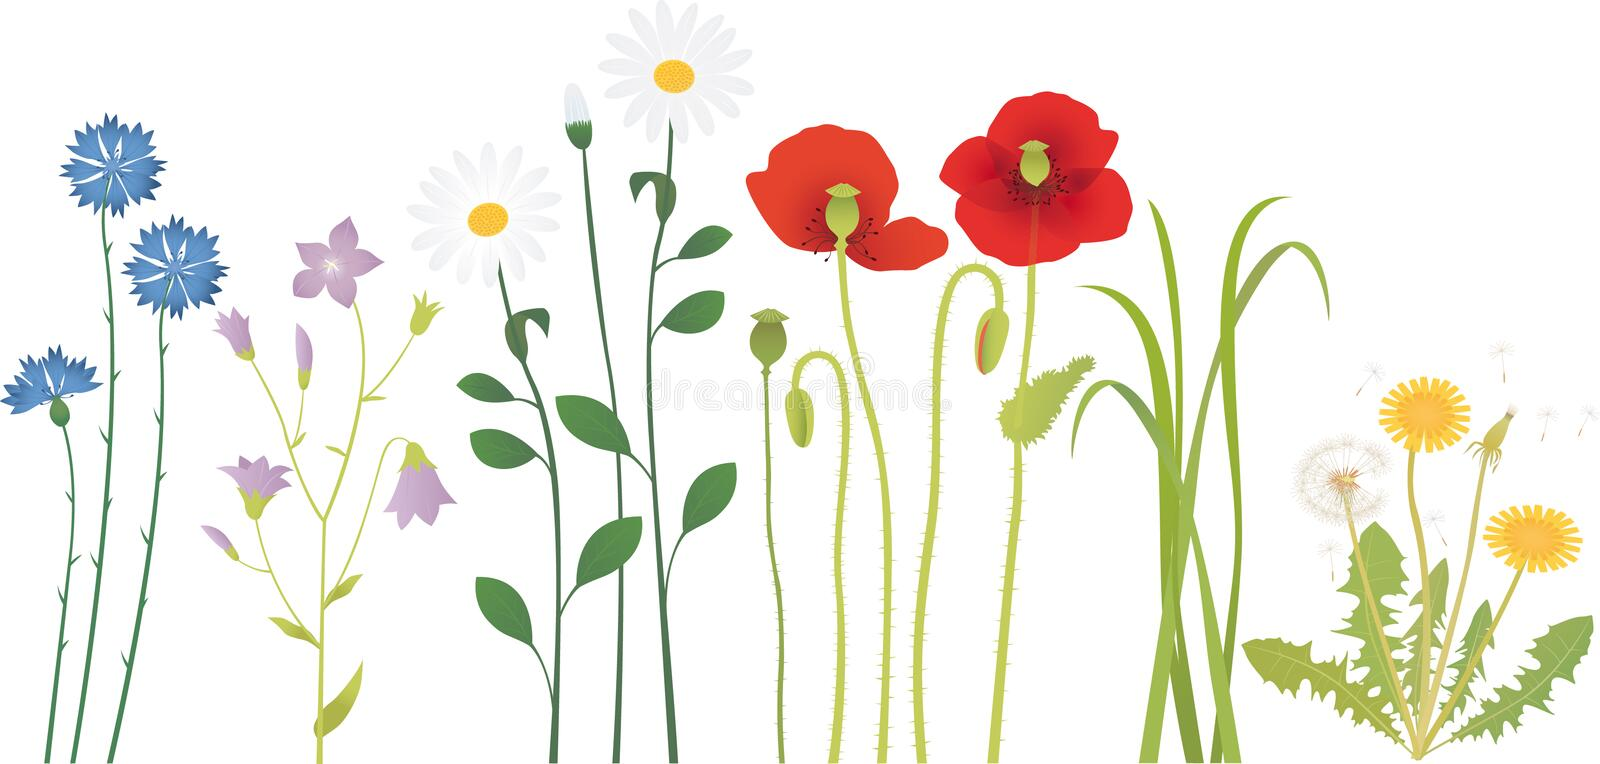 Meadow flowers stock illustration